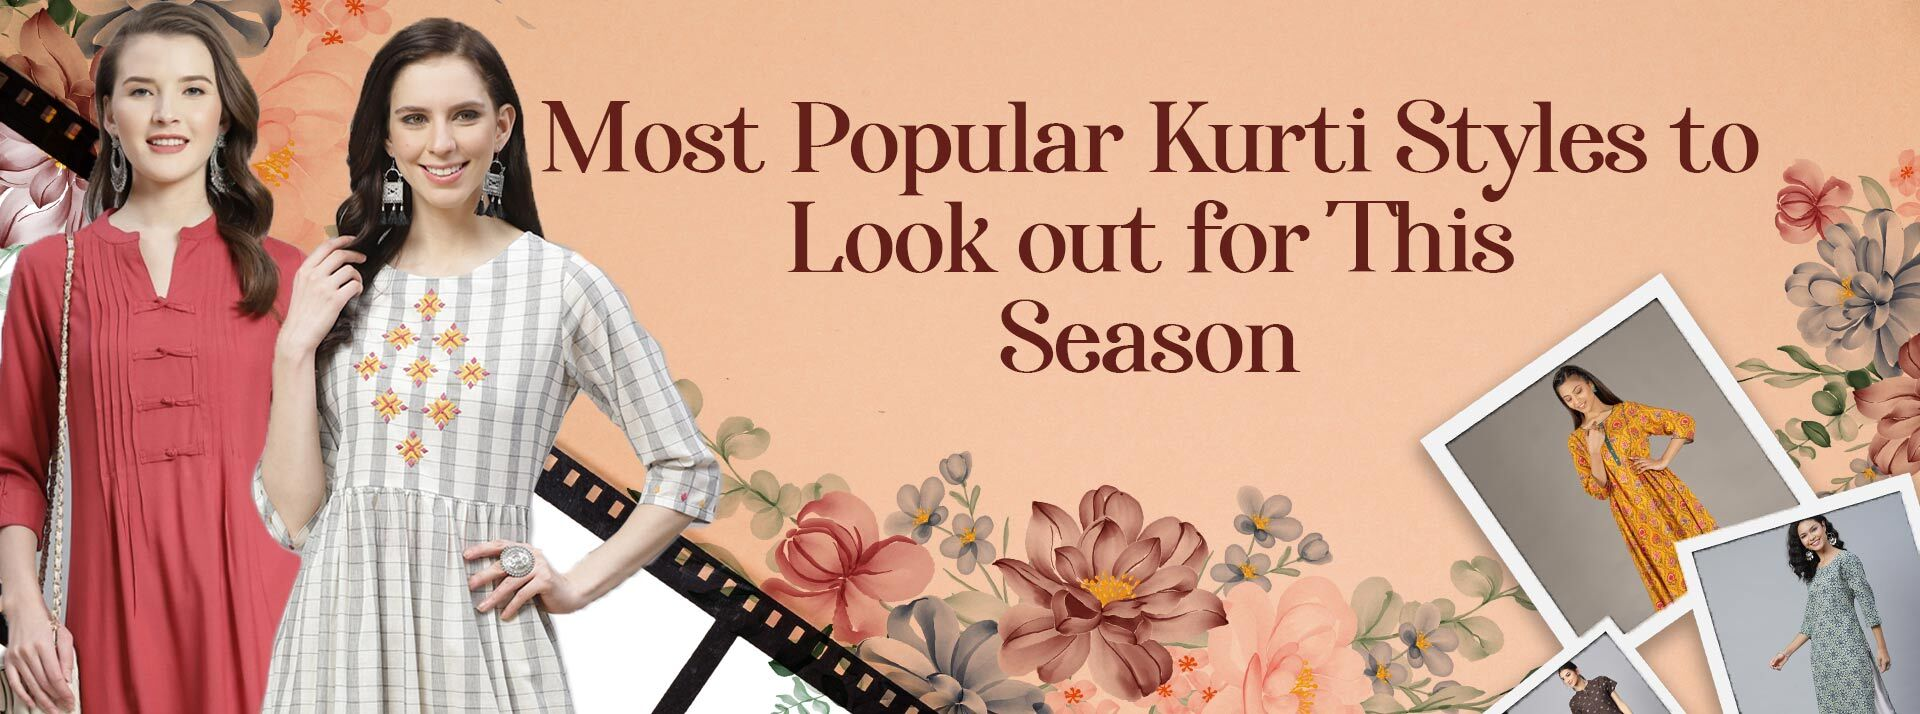 Most Popular Kurti Styles Every Woman Should Own